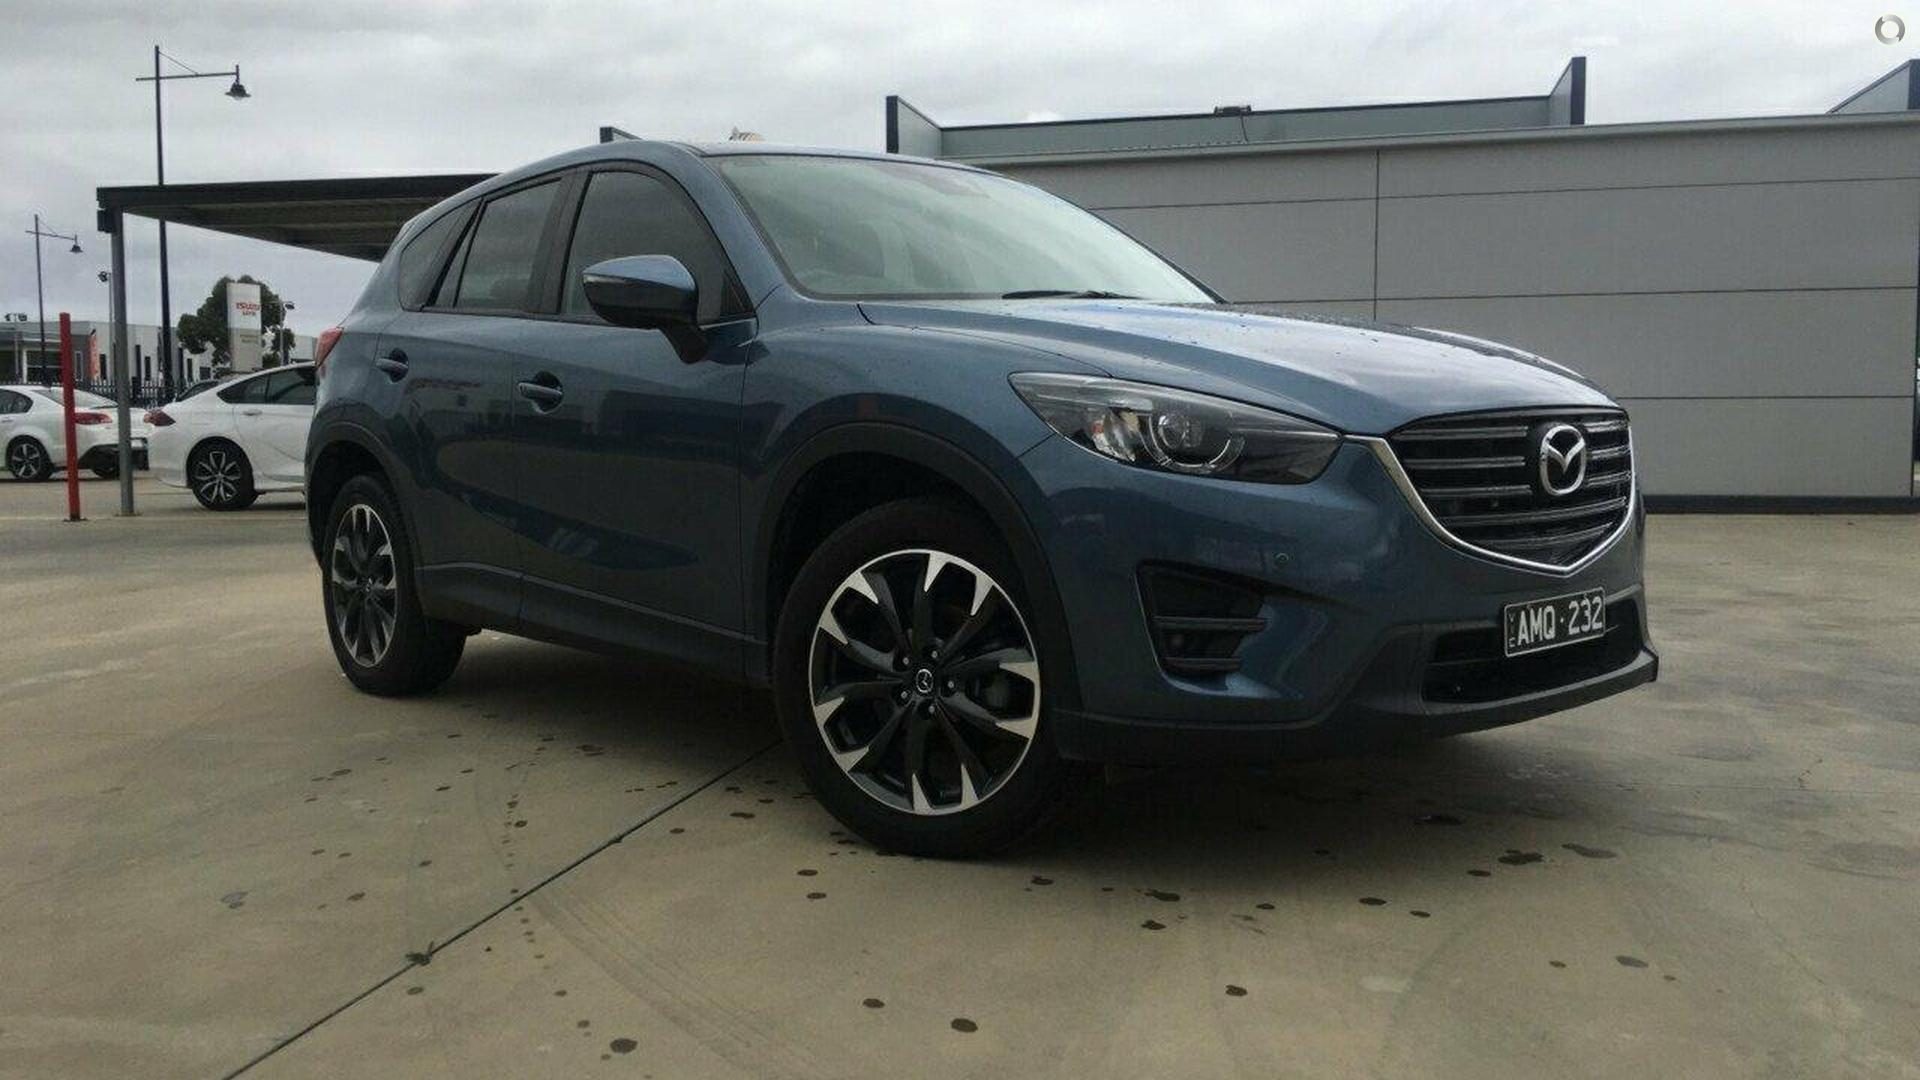 2017 Mazda Cx-5 KE Series 2